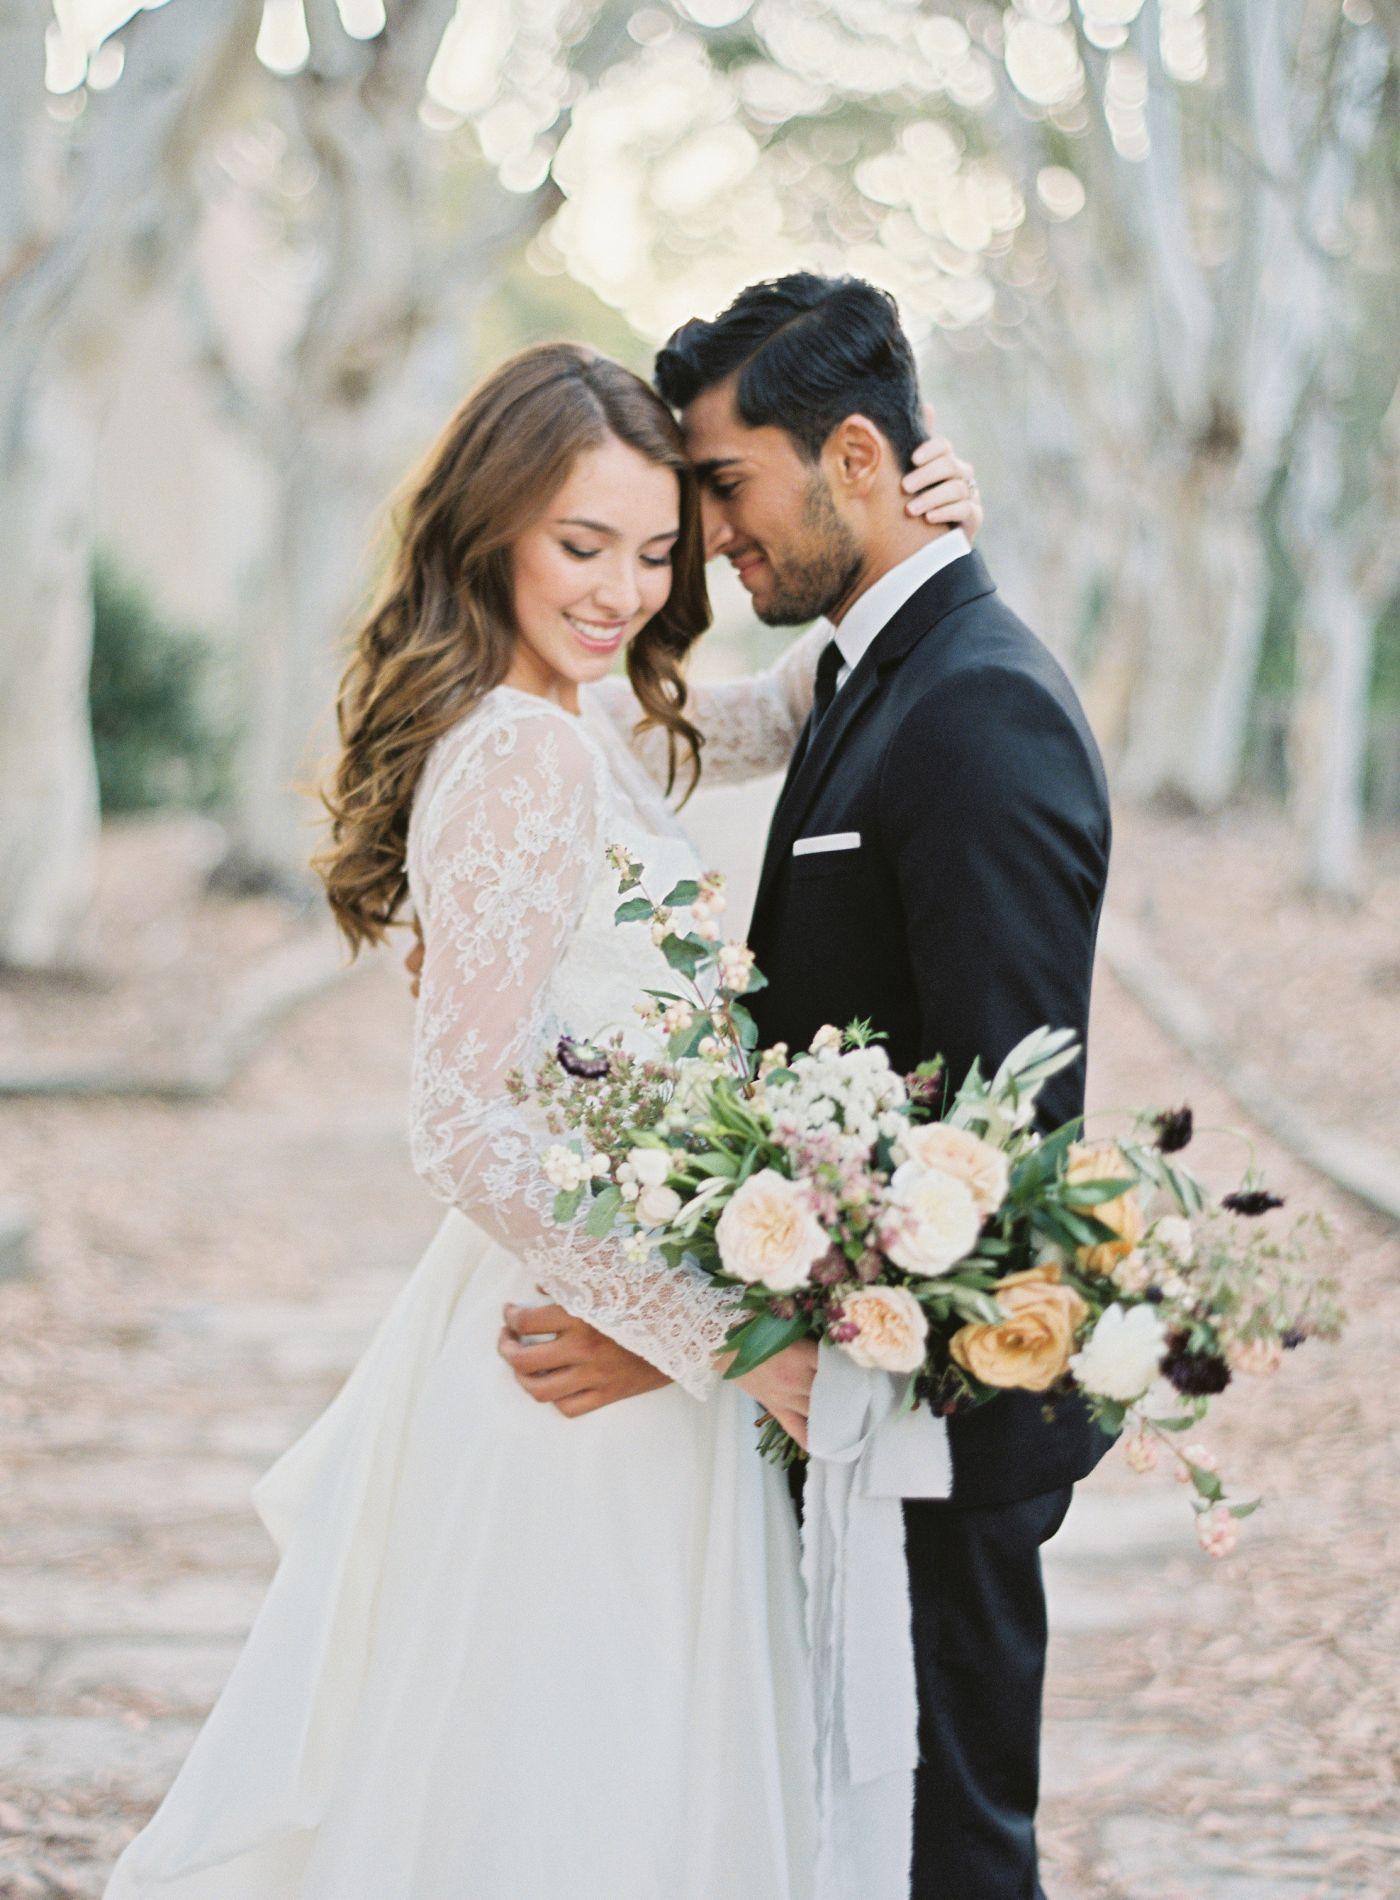 Old World Romance Wedding Inspiration